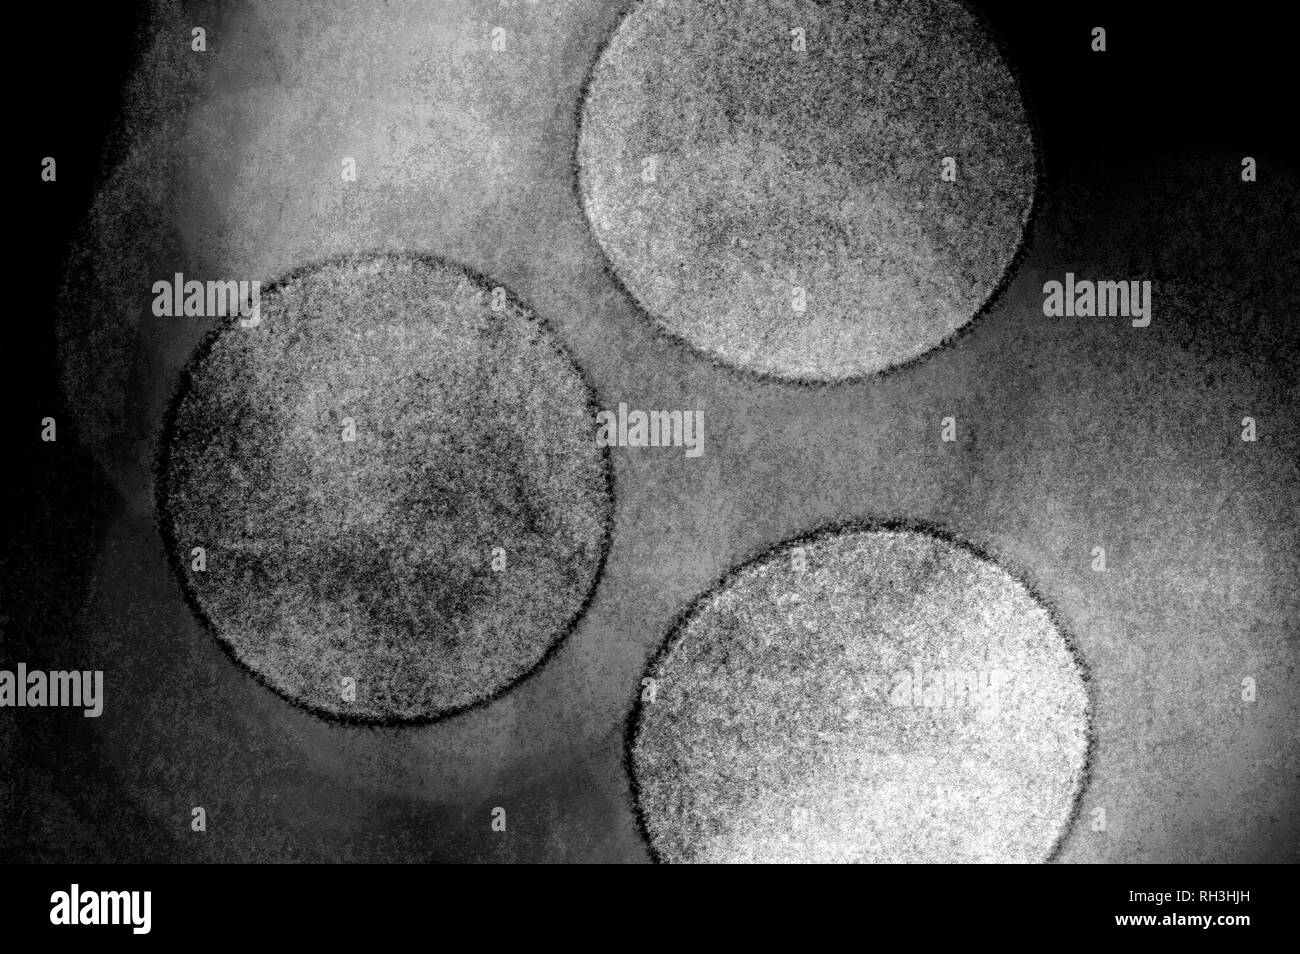 abstract monochrome image of a three circles - Stock Image